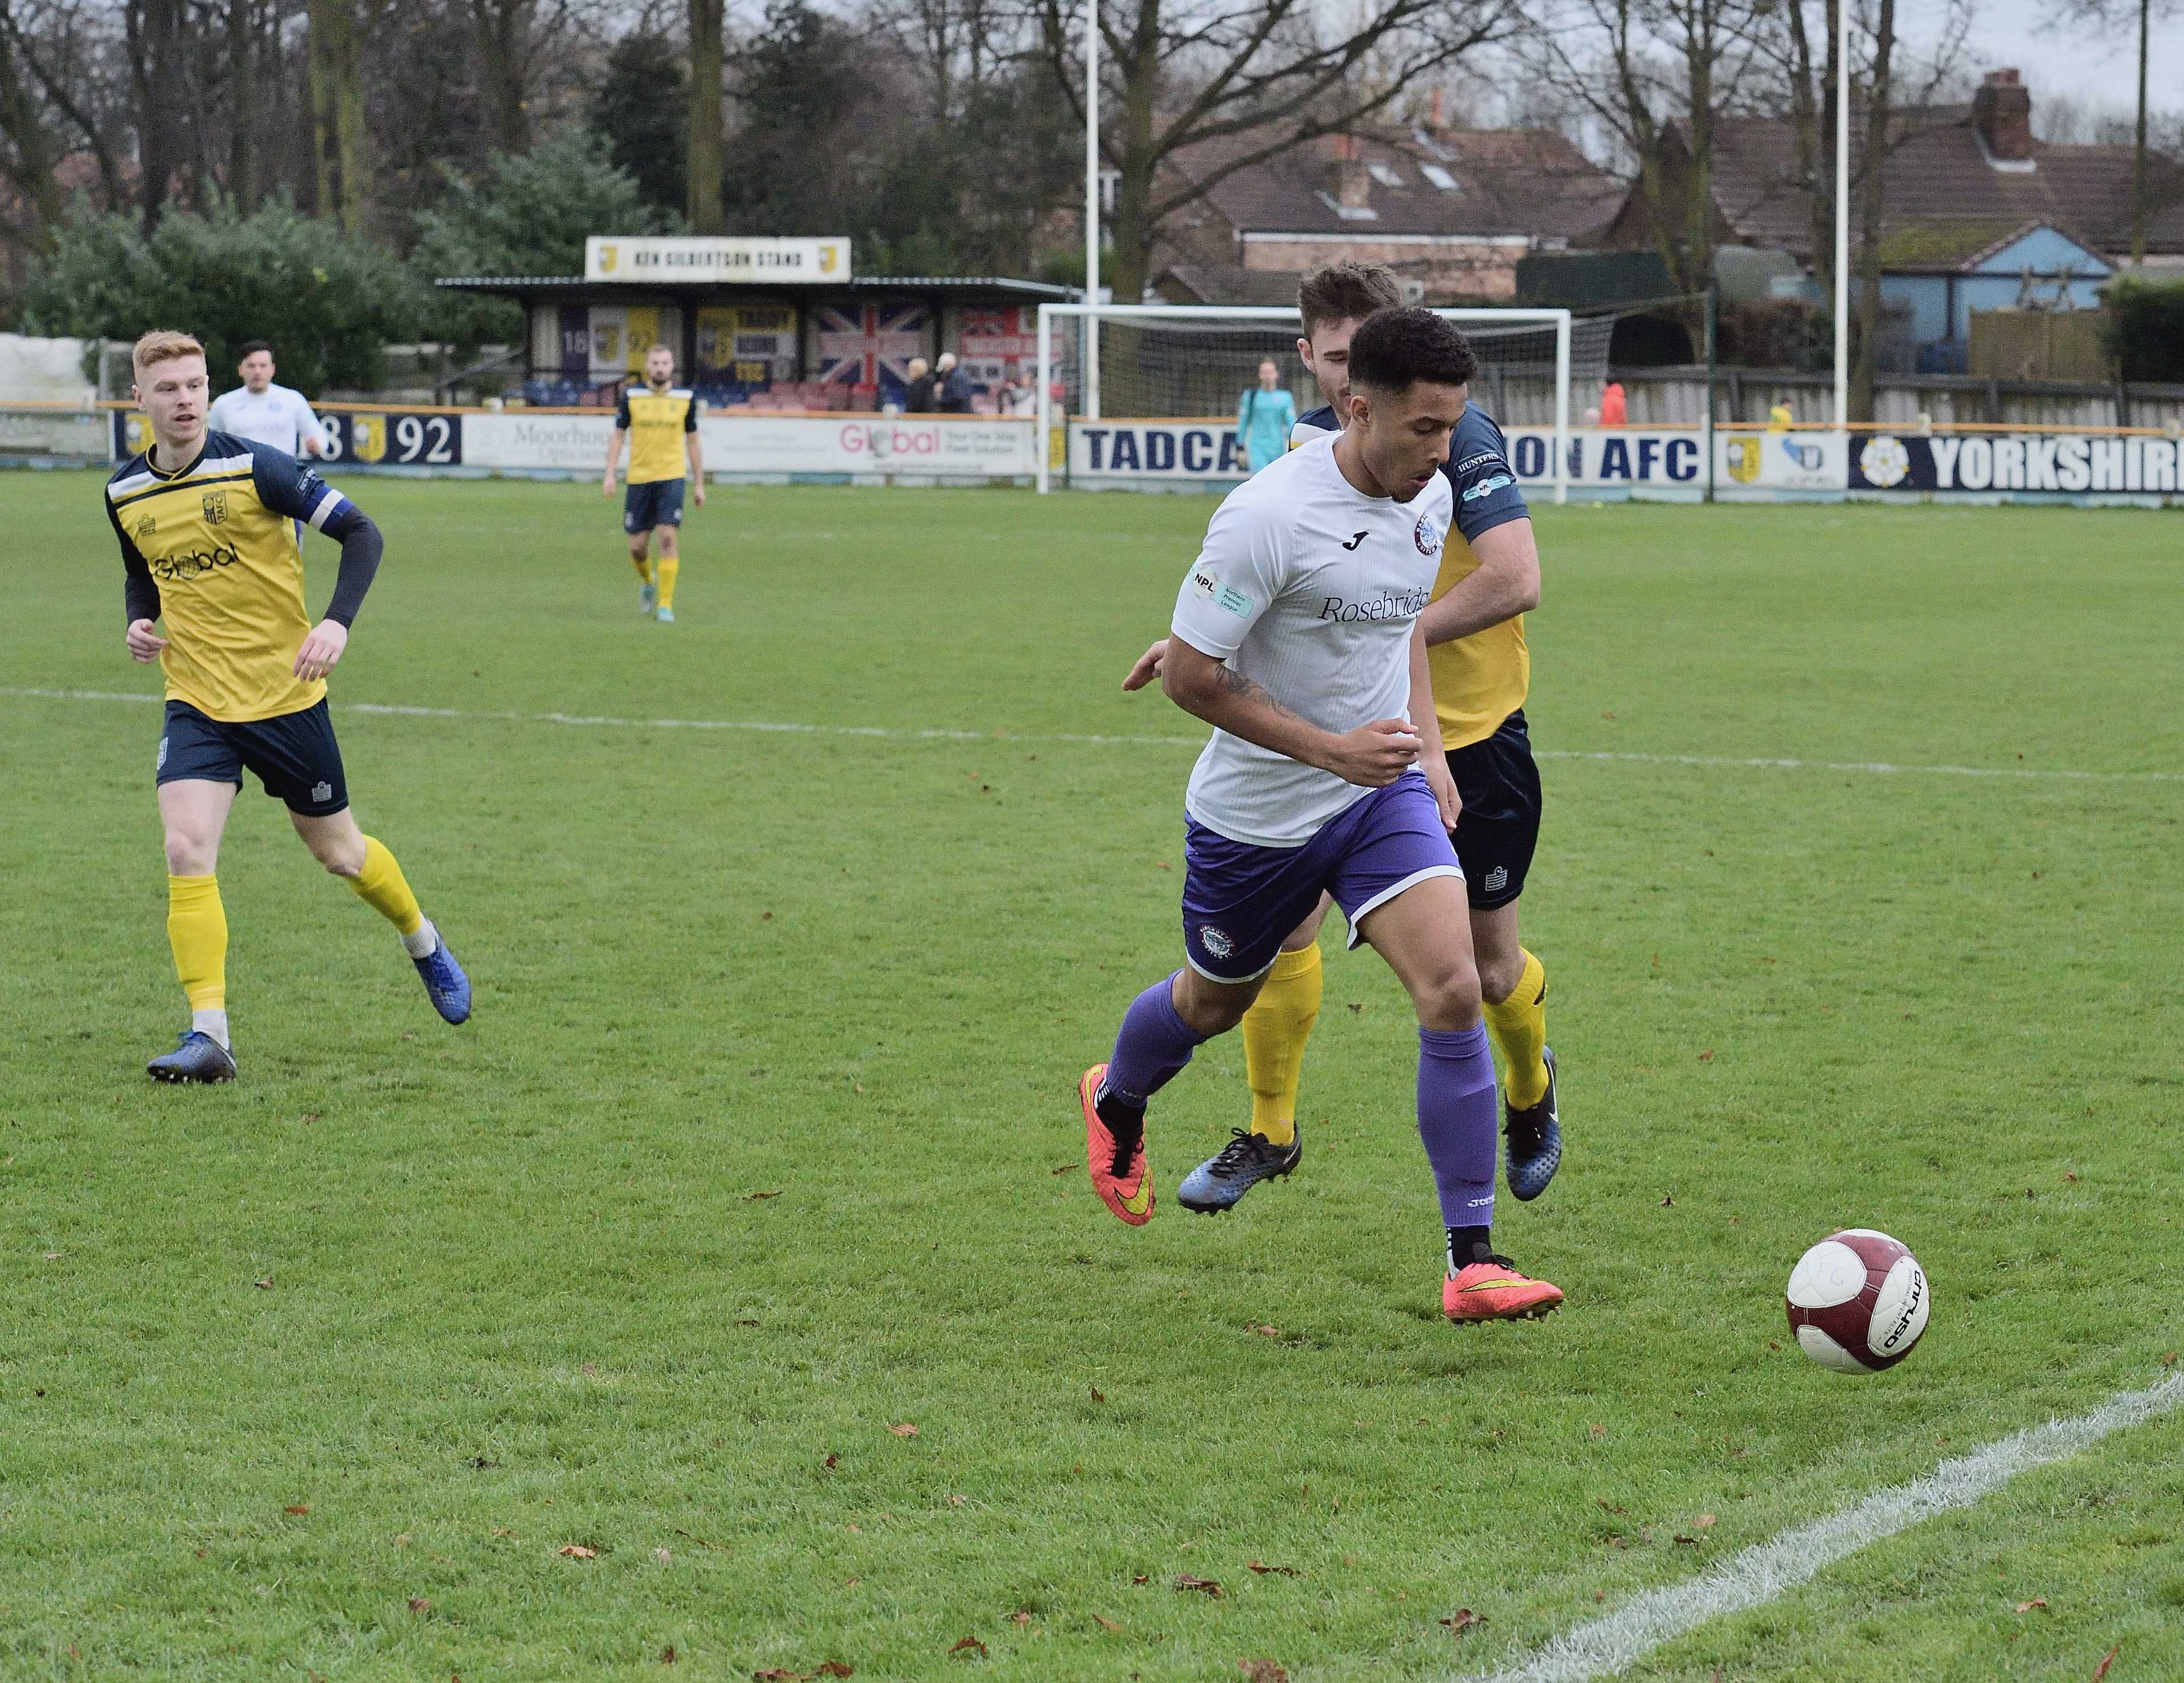 Tadcaster 2 Rams 2 - Match Action